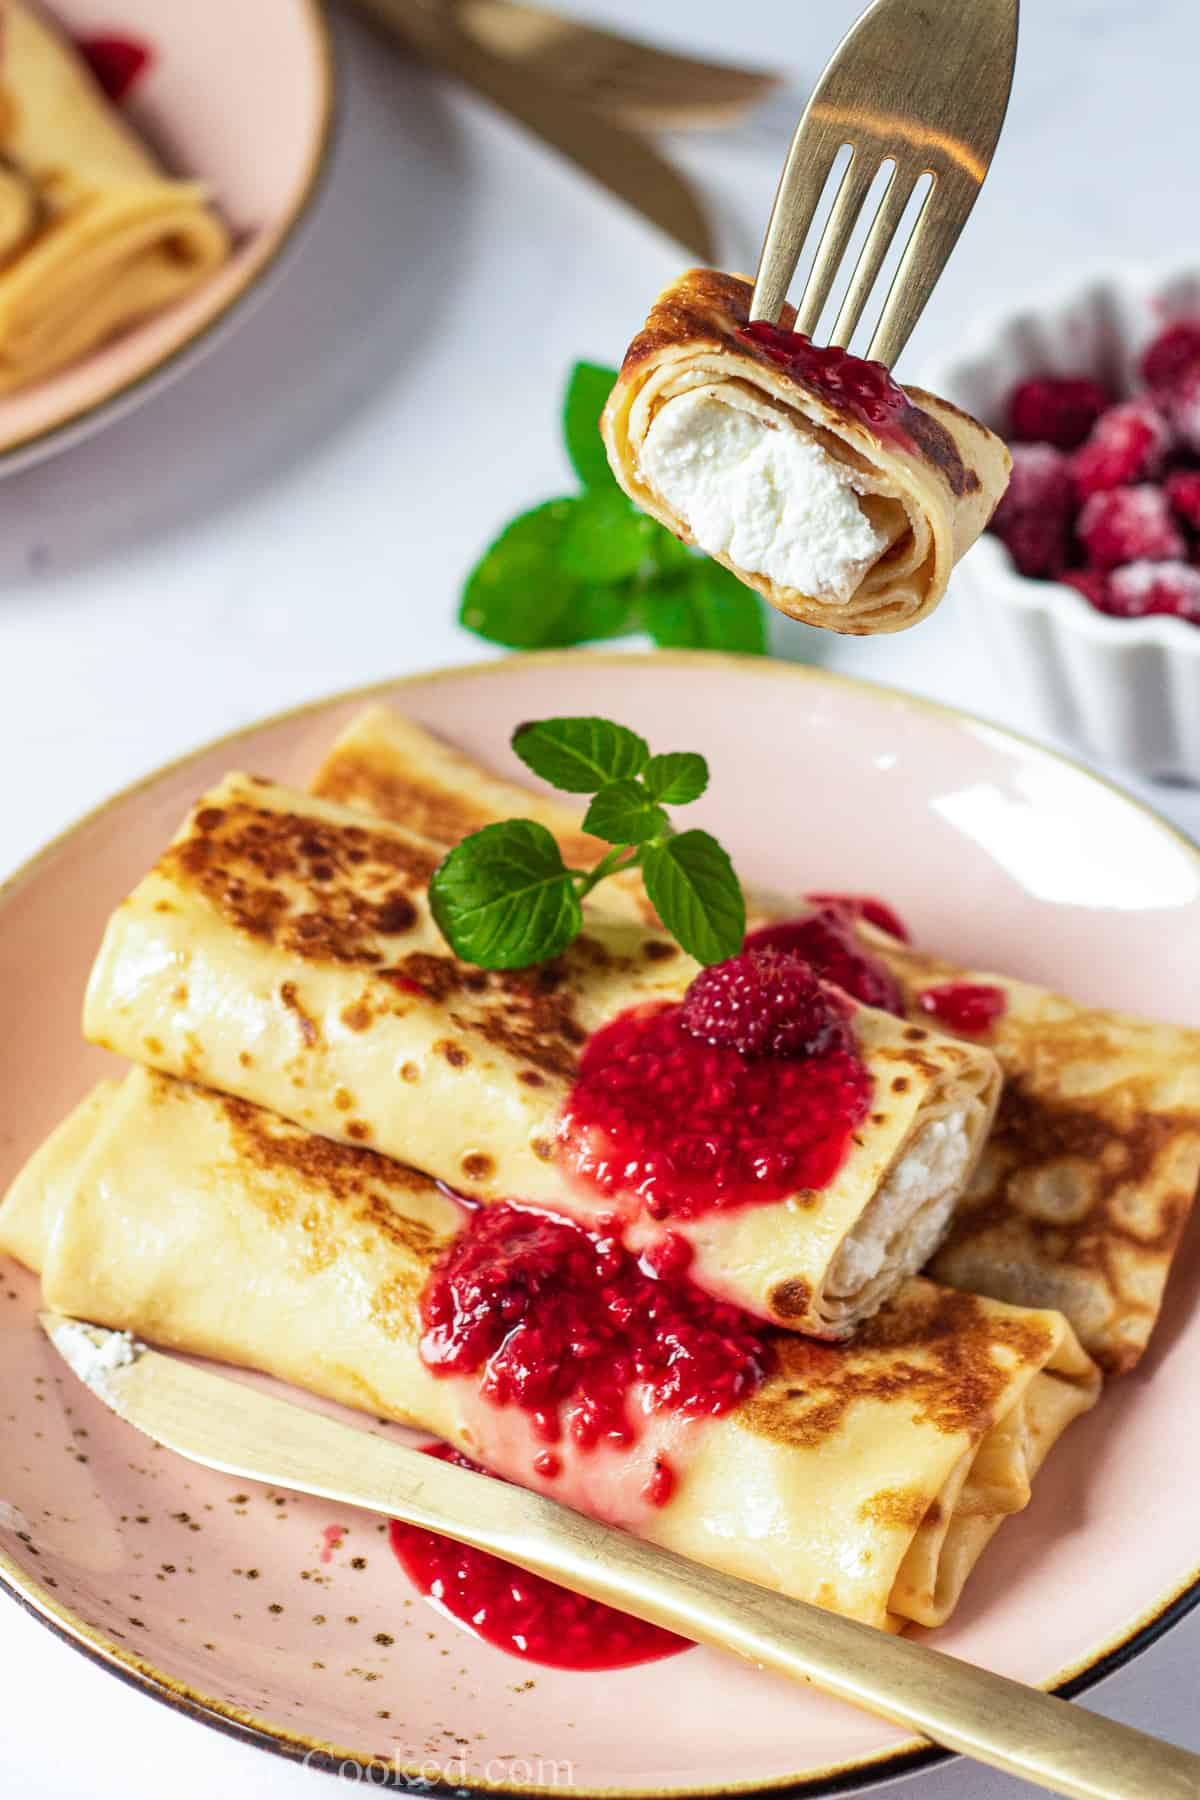 Closeup of a Cheese Blintz with berry sauce and a garnish on top, a knife next to them on the plate and a fork with a piece of blintz on it.